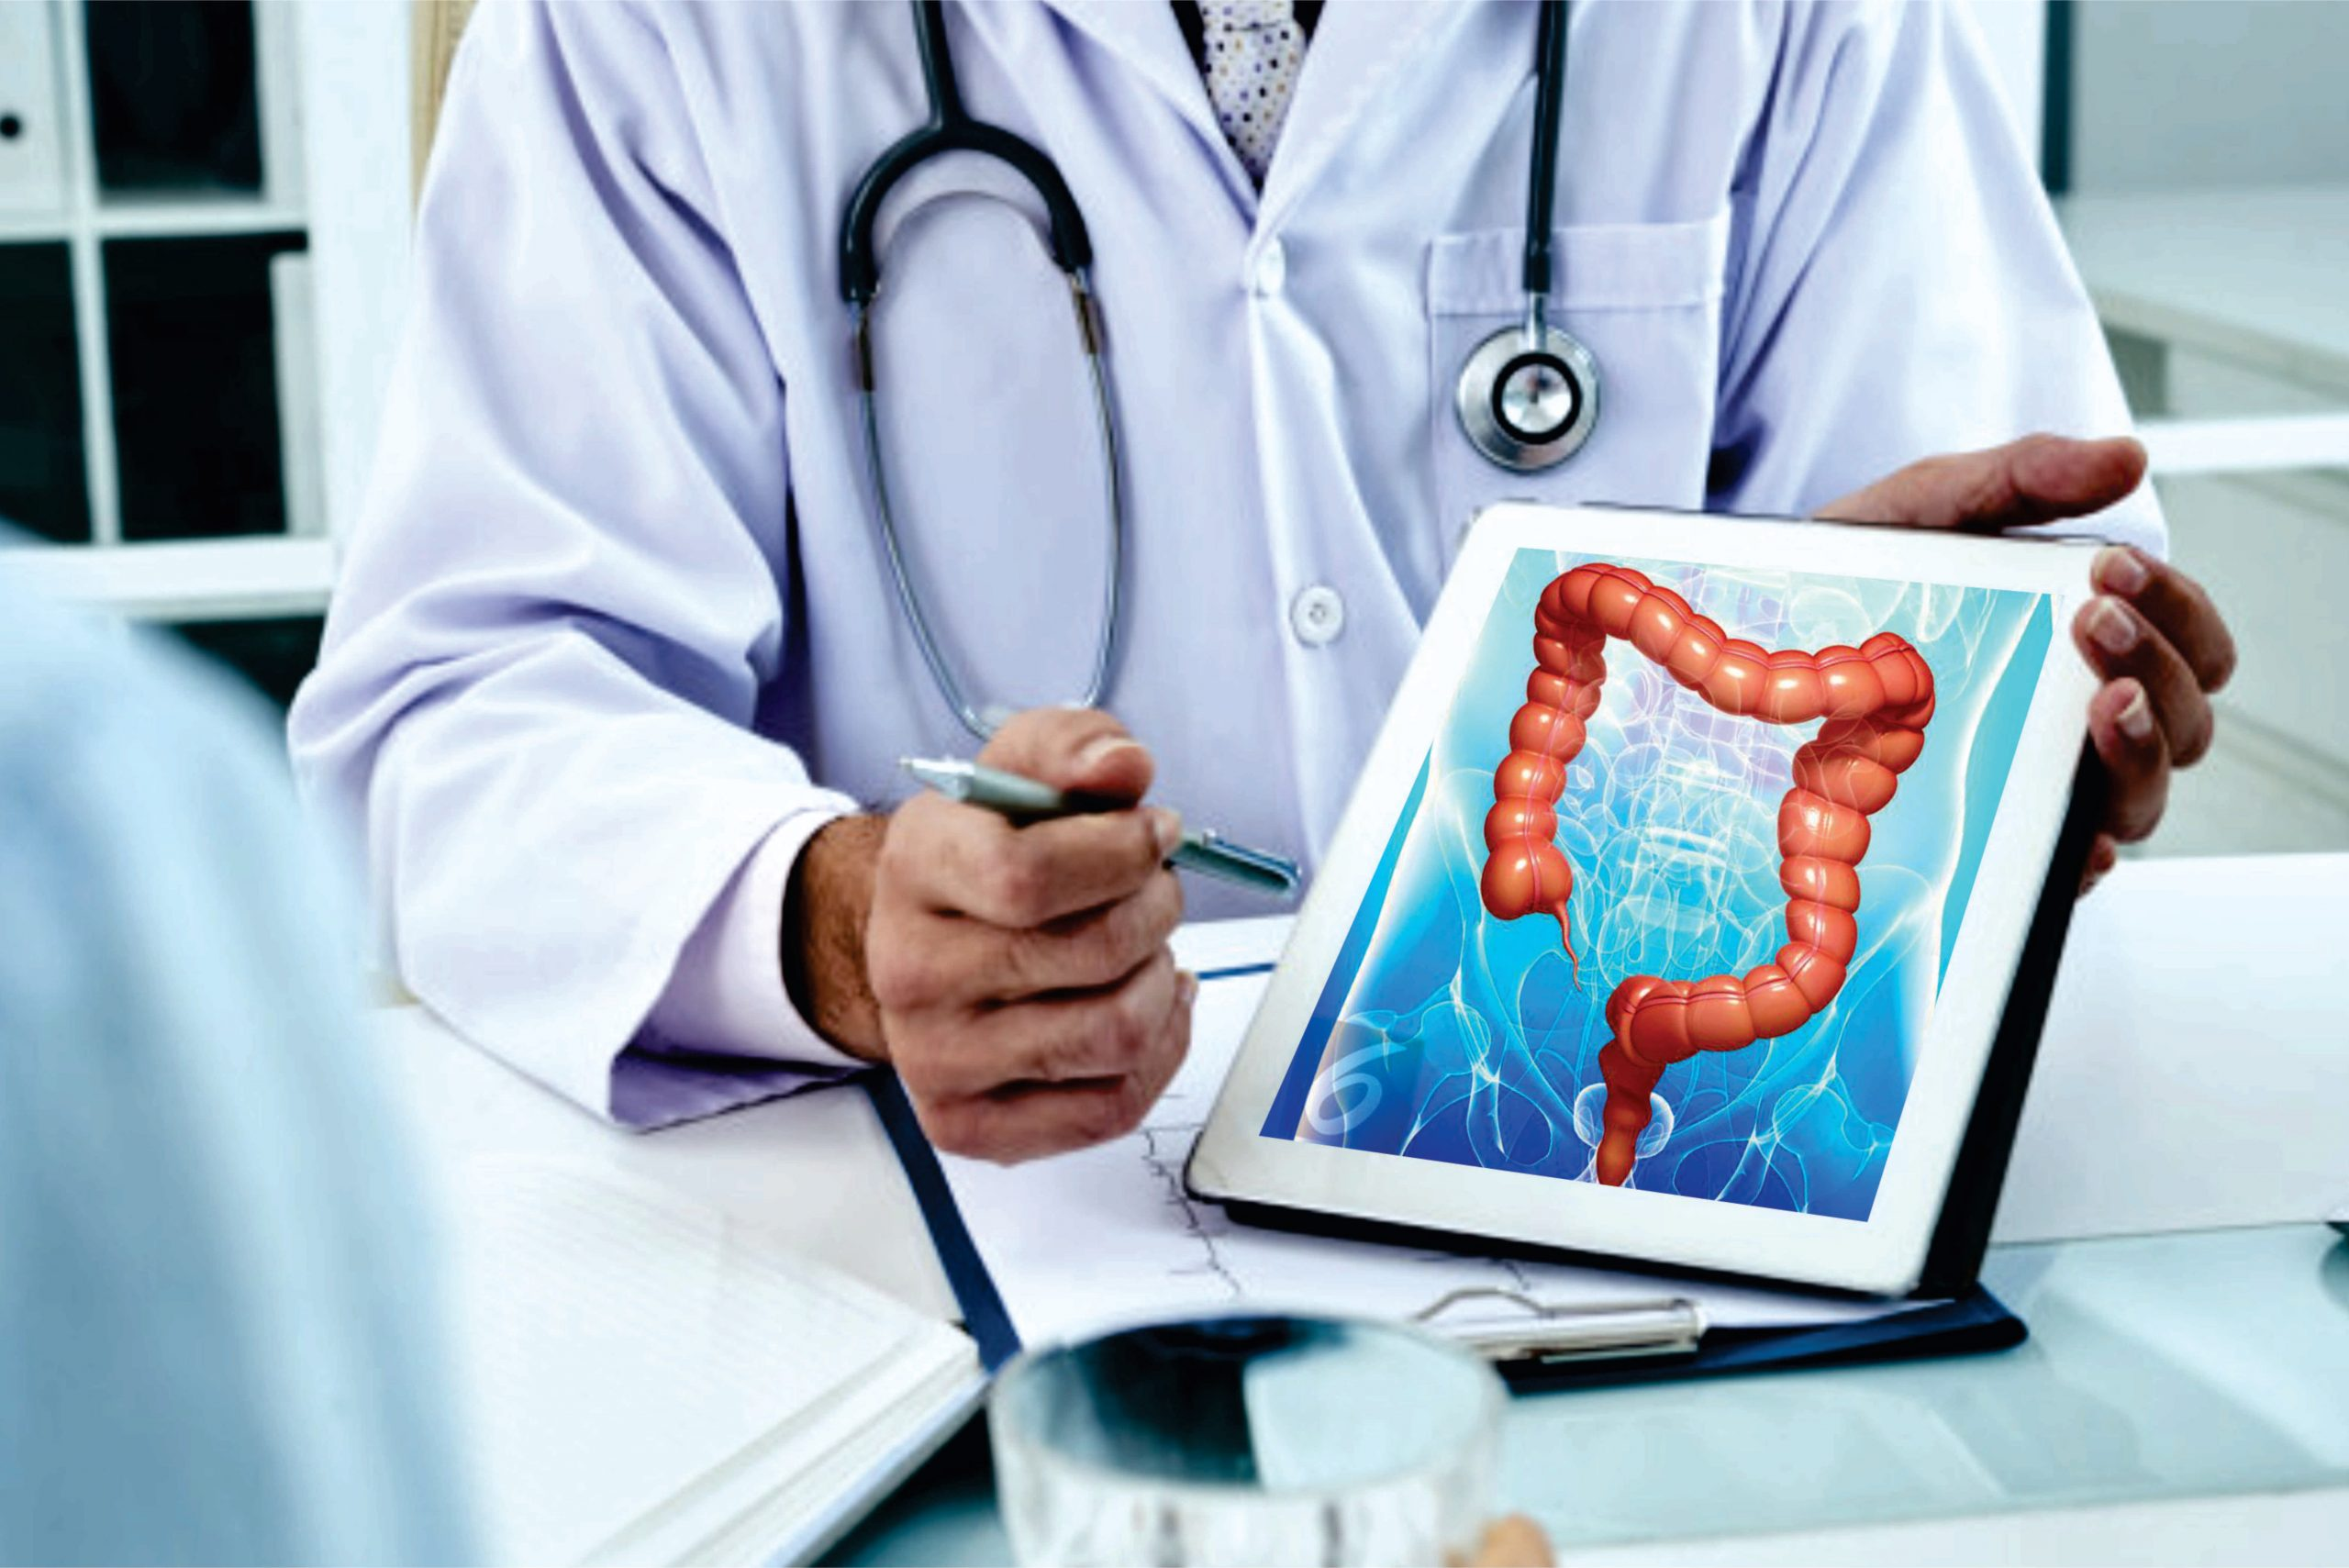 Department of Gastroenterology and Hepatology offer quality gastroenterology, state-of-the-art endoscopy, and hepatology services.